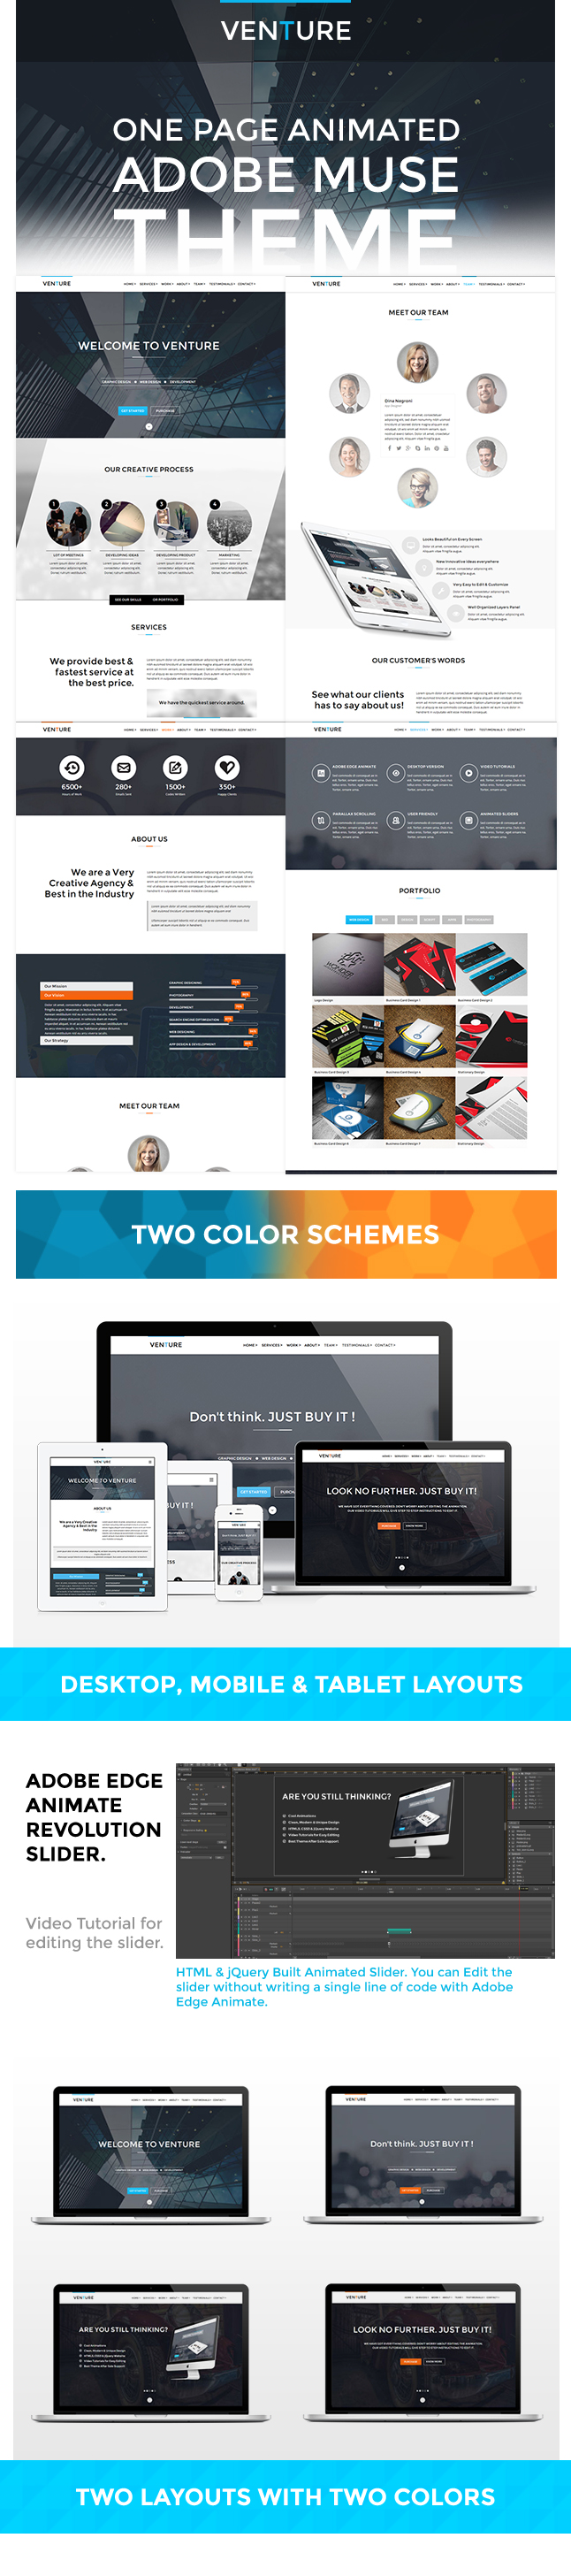 Venutre adobe muse animated website template by for Adobe muse mobile templates